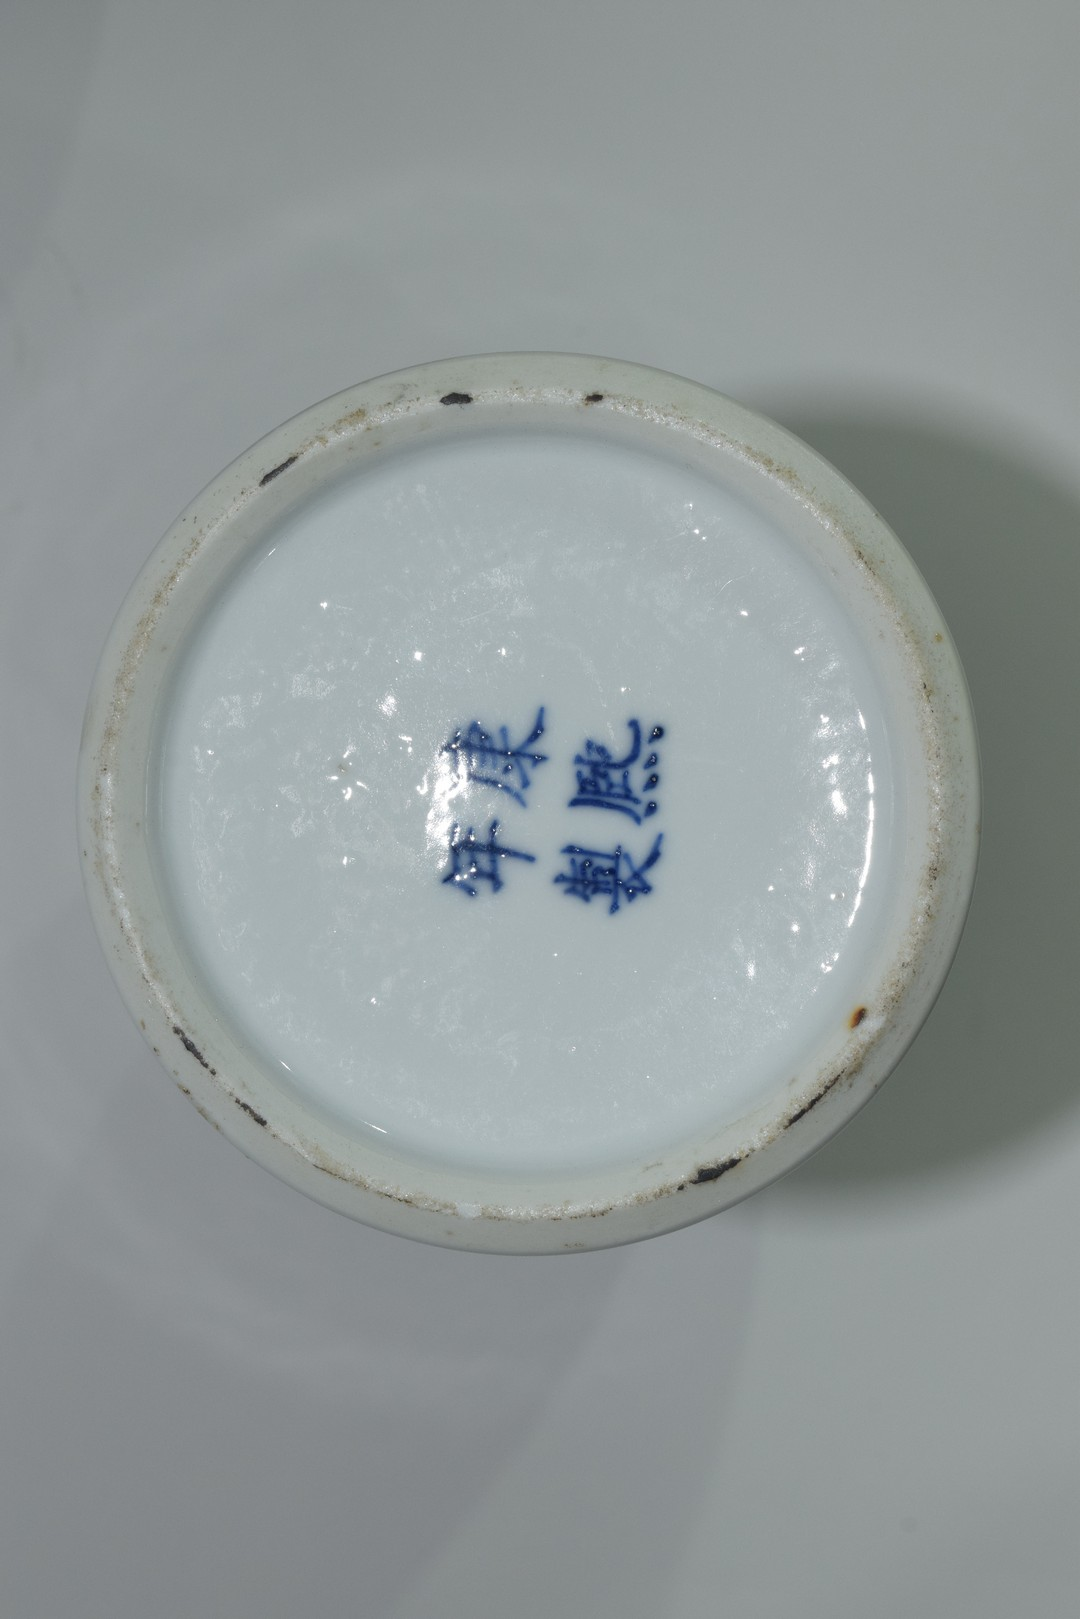 19th century Chinese porcelain bowl - Image 14 of 17